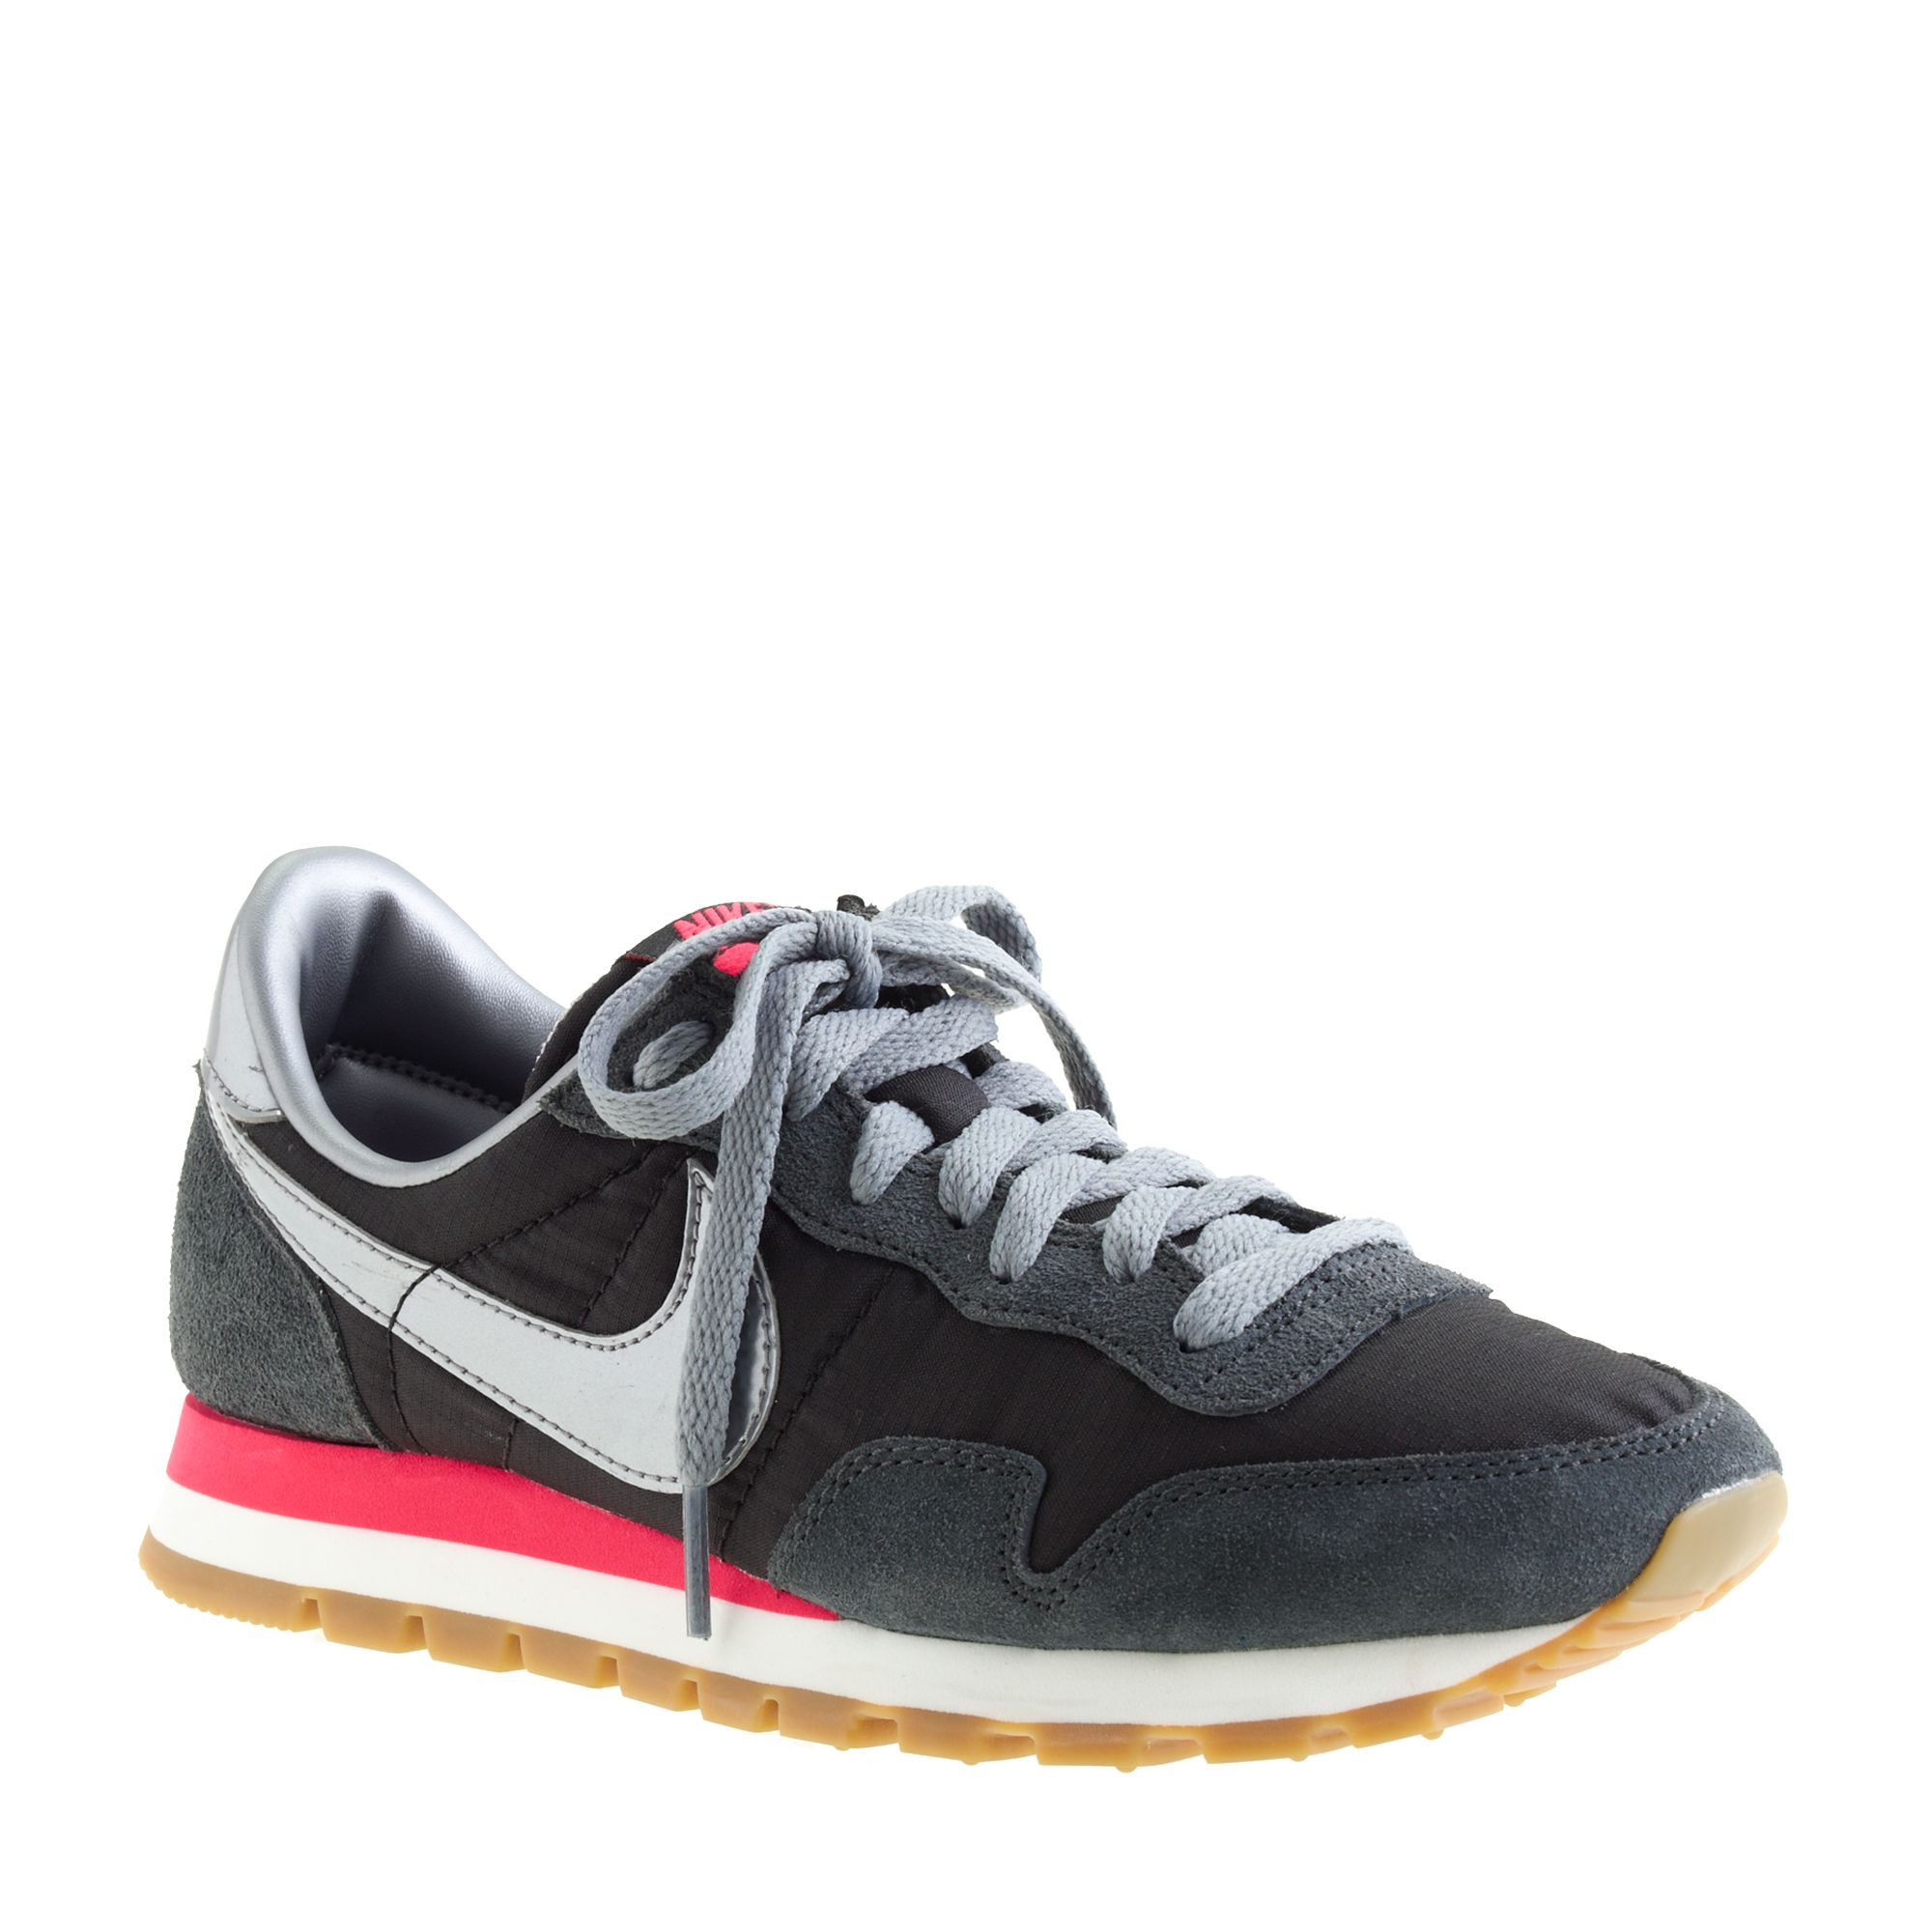 d38e296dc Lyst - J.Crew Nike Vintage Collection Air Pegasus 83 Sneakers in Black